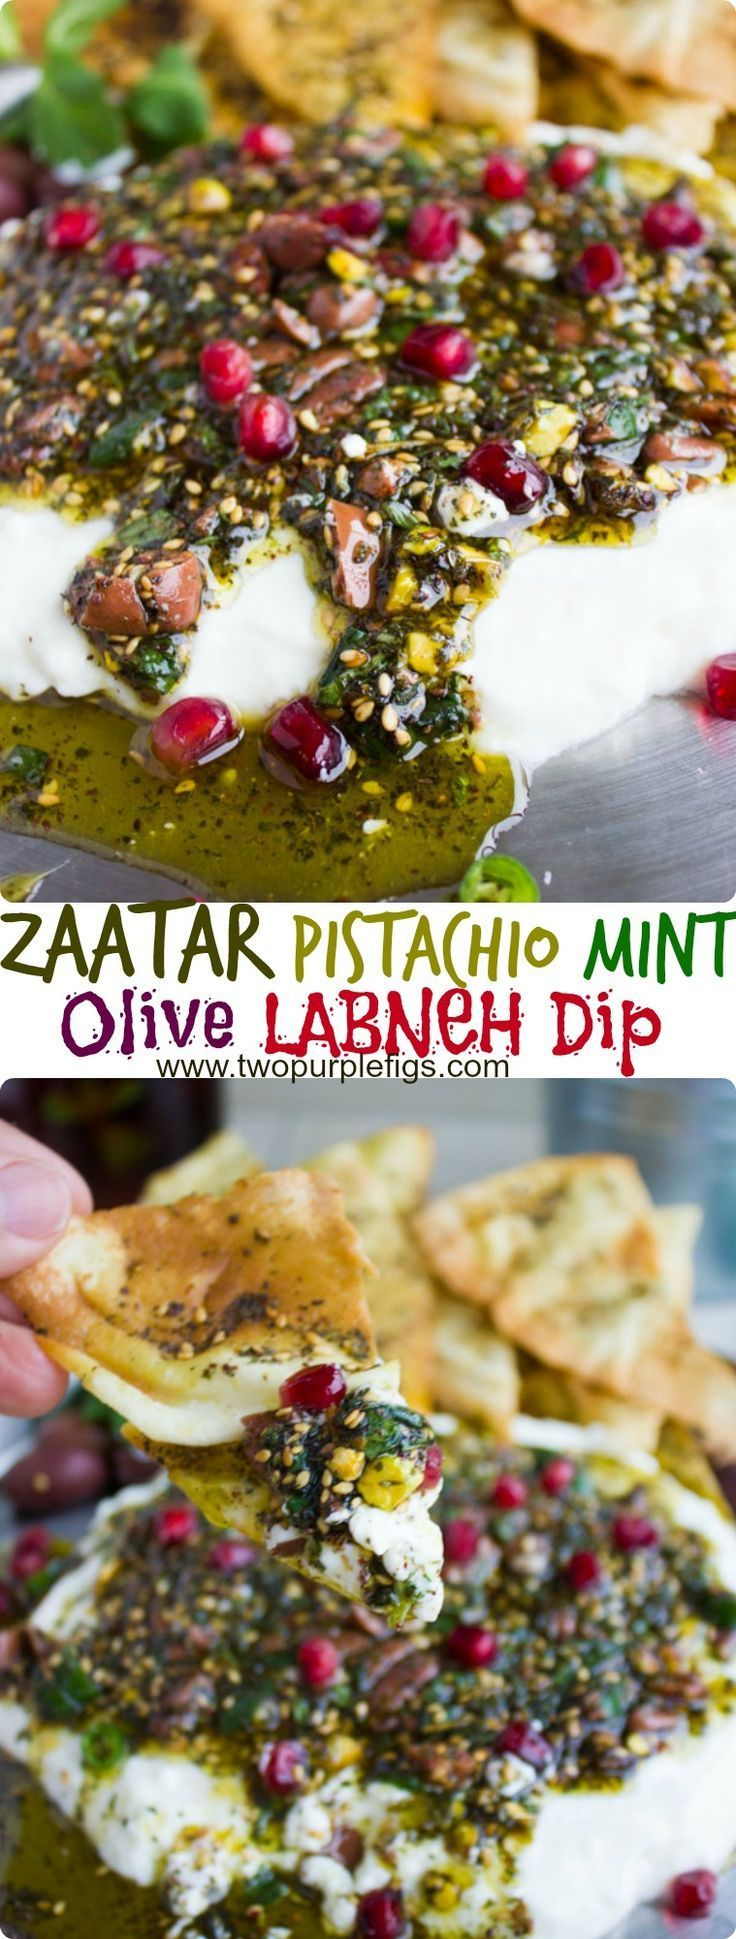 Labneh Dip with Zaatar Pistachio Mint Olive Topping. This the BEST lightest and most flavorful way to do a DIP! Use Greek yogurt for a quick substitute, and pile up the sweet, crunchy, spicy,toasty and salty--ABSOLUTELY delicious! Get the recipe for this dip, Zaatar chips and labneh from scratch! http://www.twopurplefigs.com